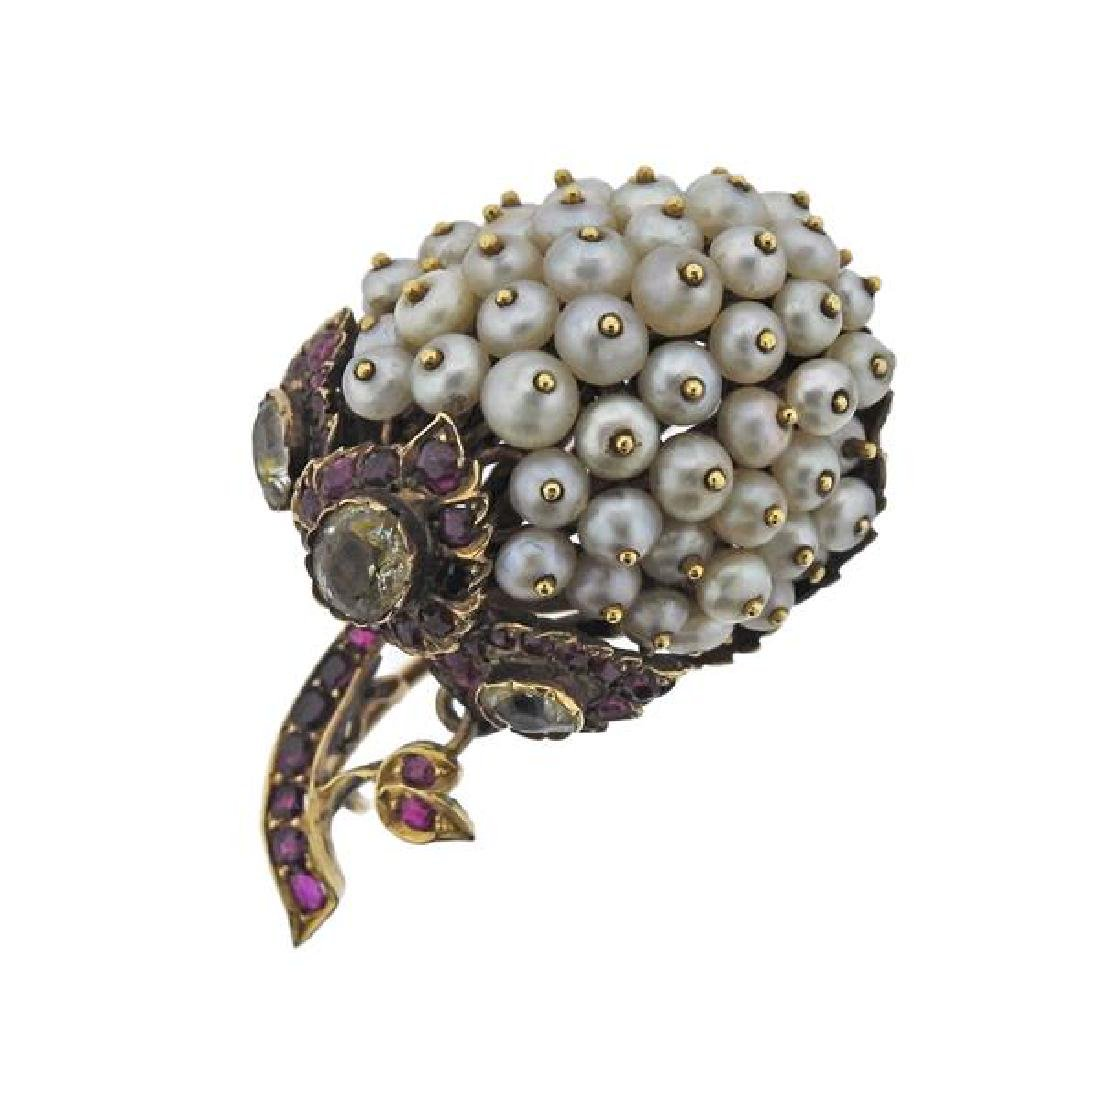 Antique 18K Gold Pearl Colored Stone Brooch